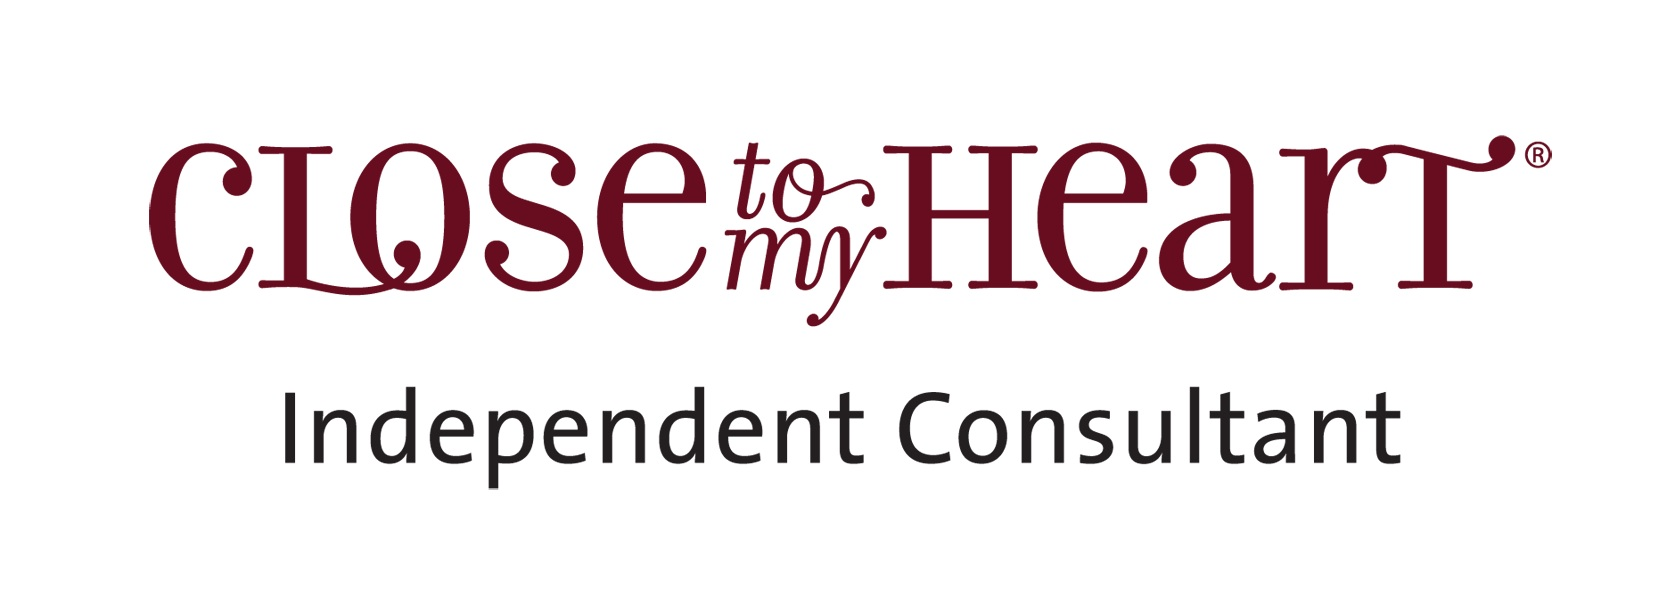 Close To My Heart - Independent Consultant